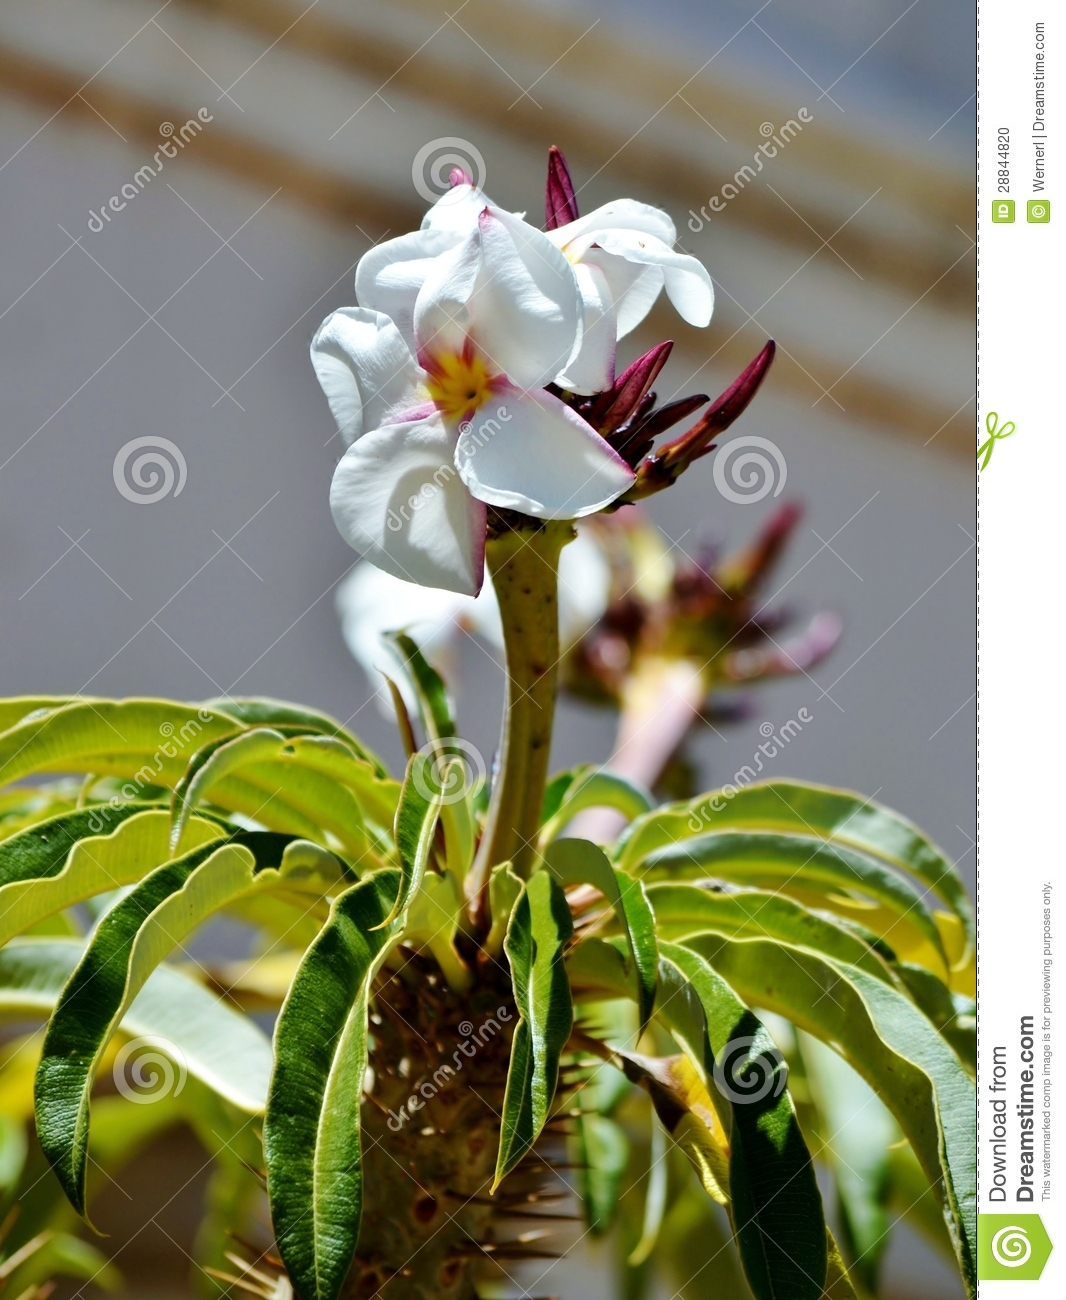 Madagascar Palm Tree Flower Stock Photo - Image: 28844820